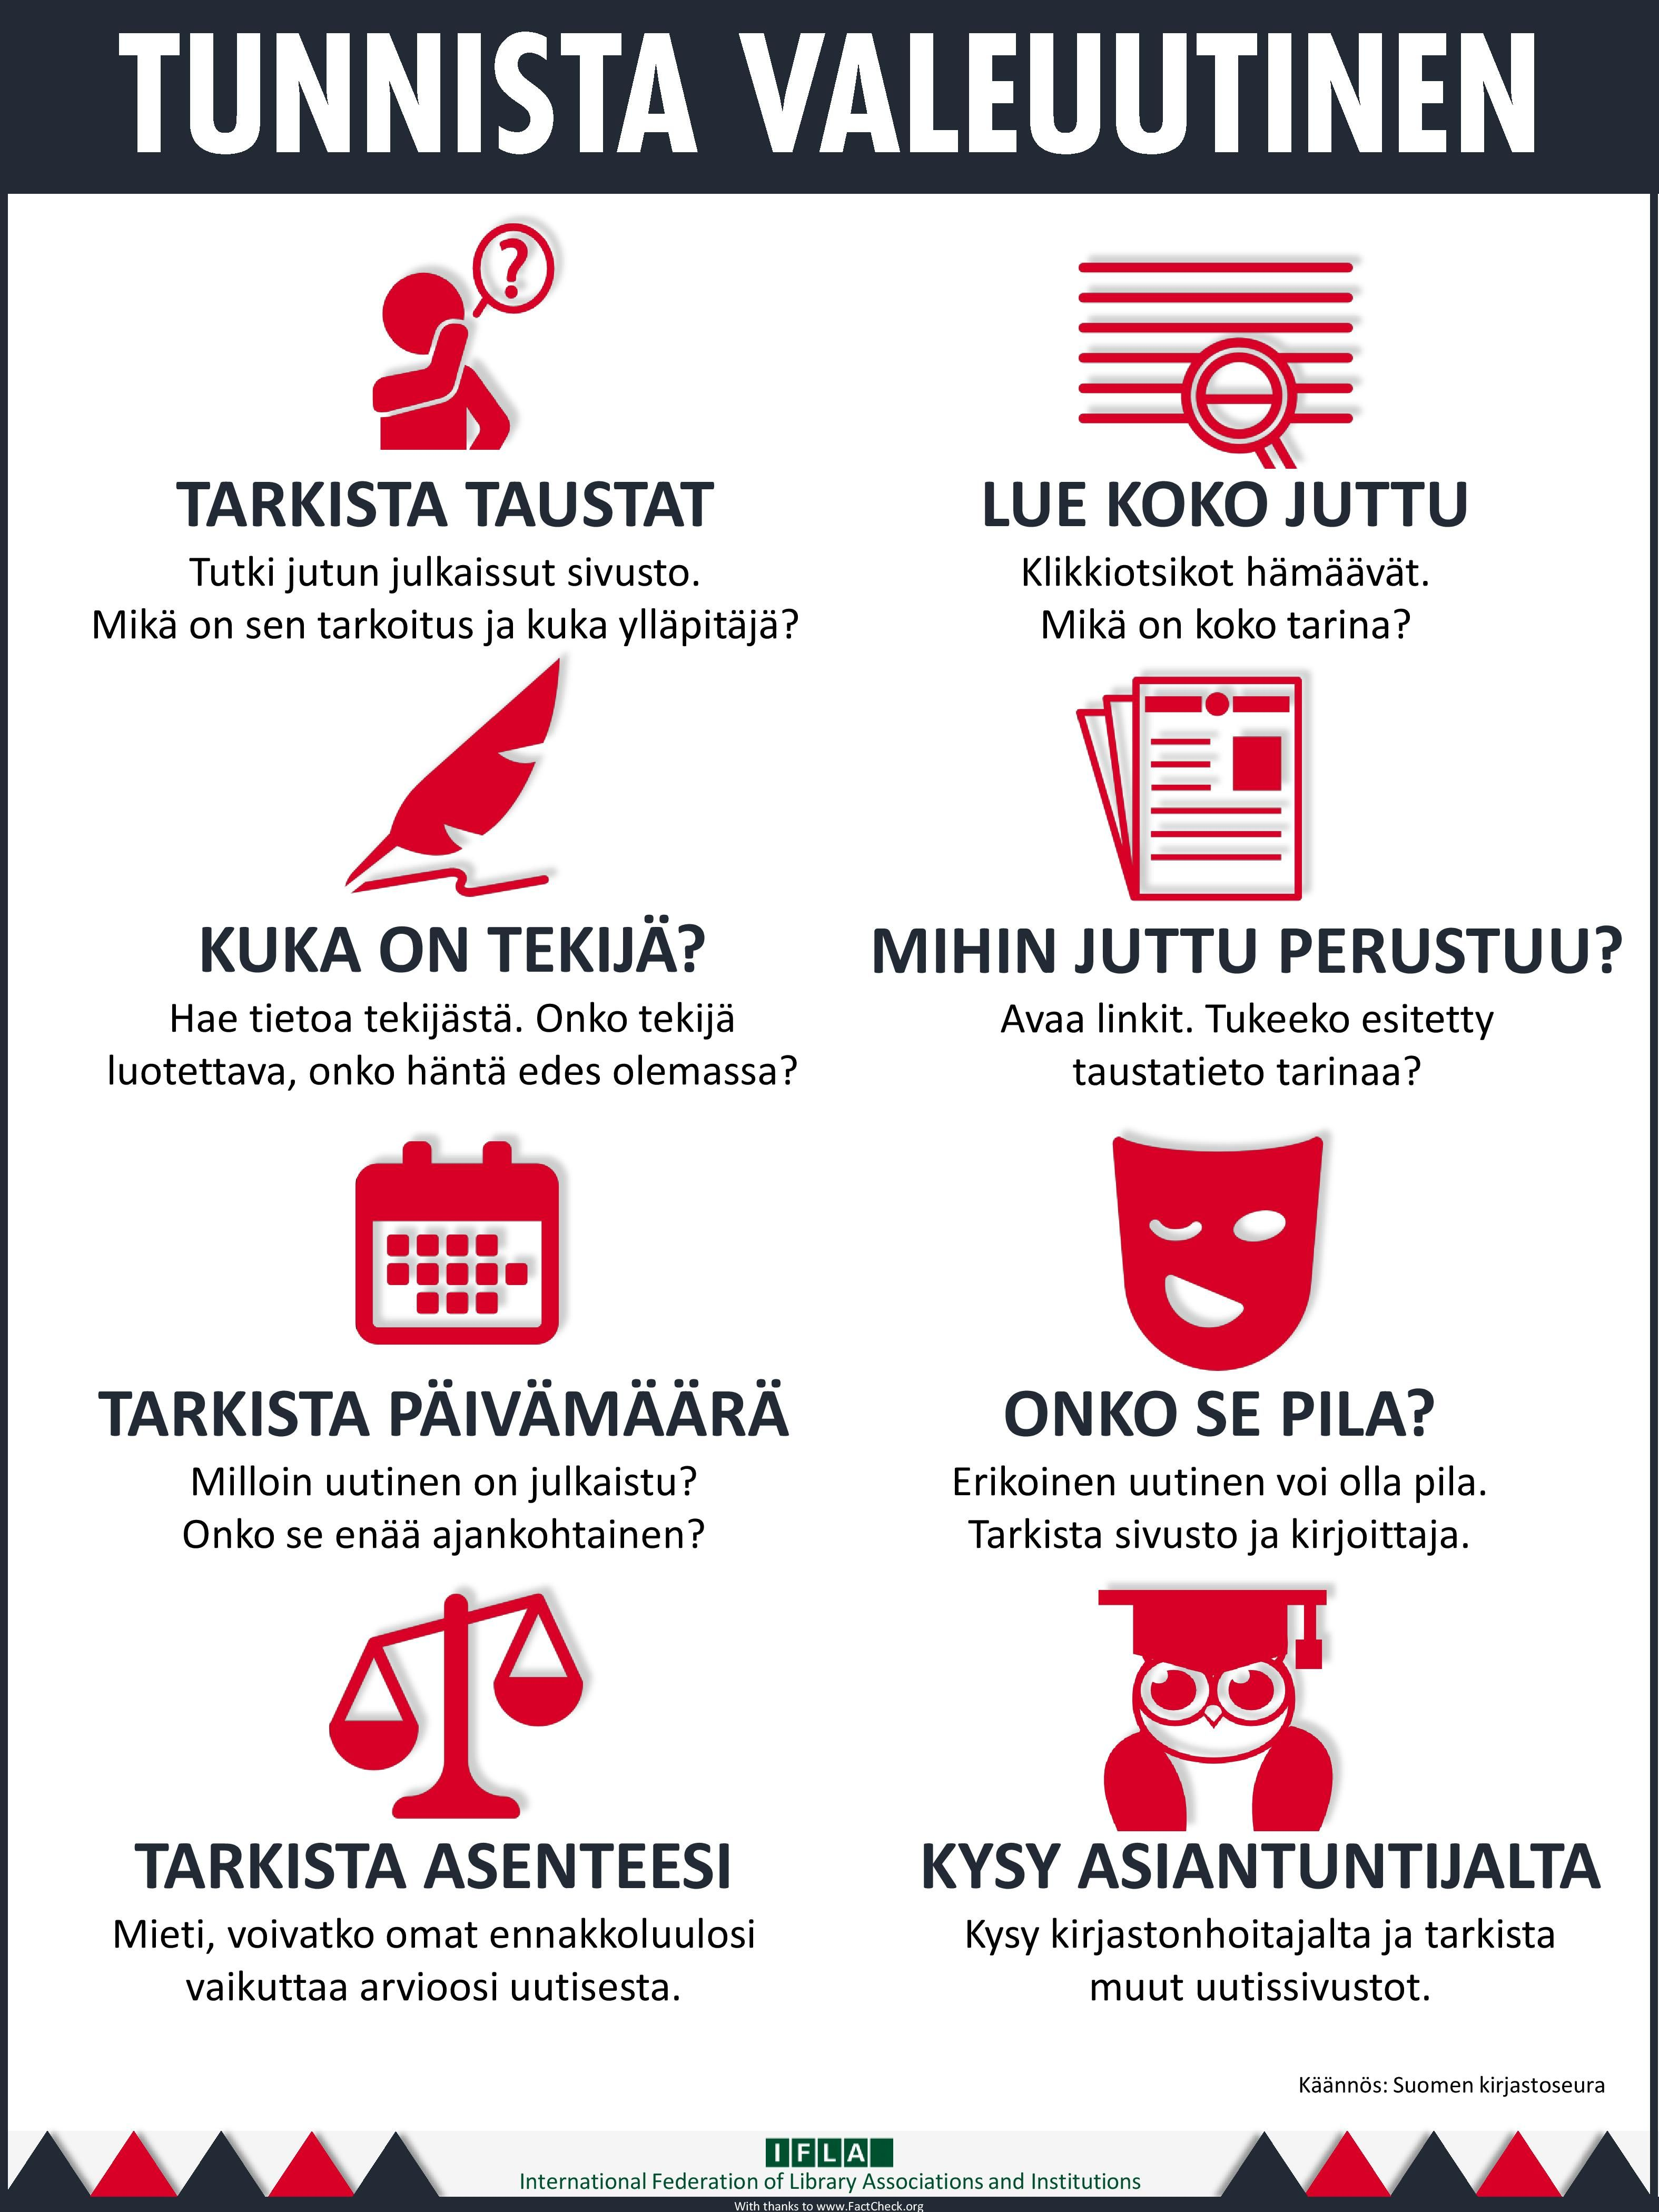 www.ifla.org files assets hq topics info-society images finnish_-_how_to_spot_fake_news.jpg